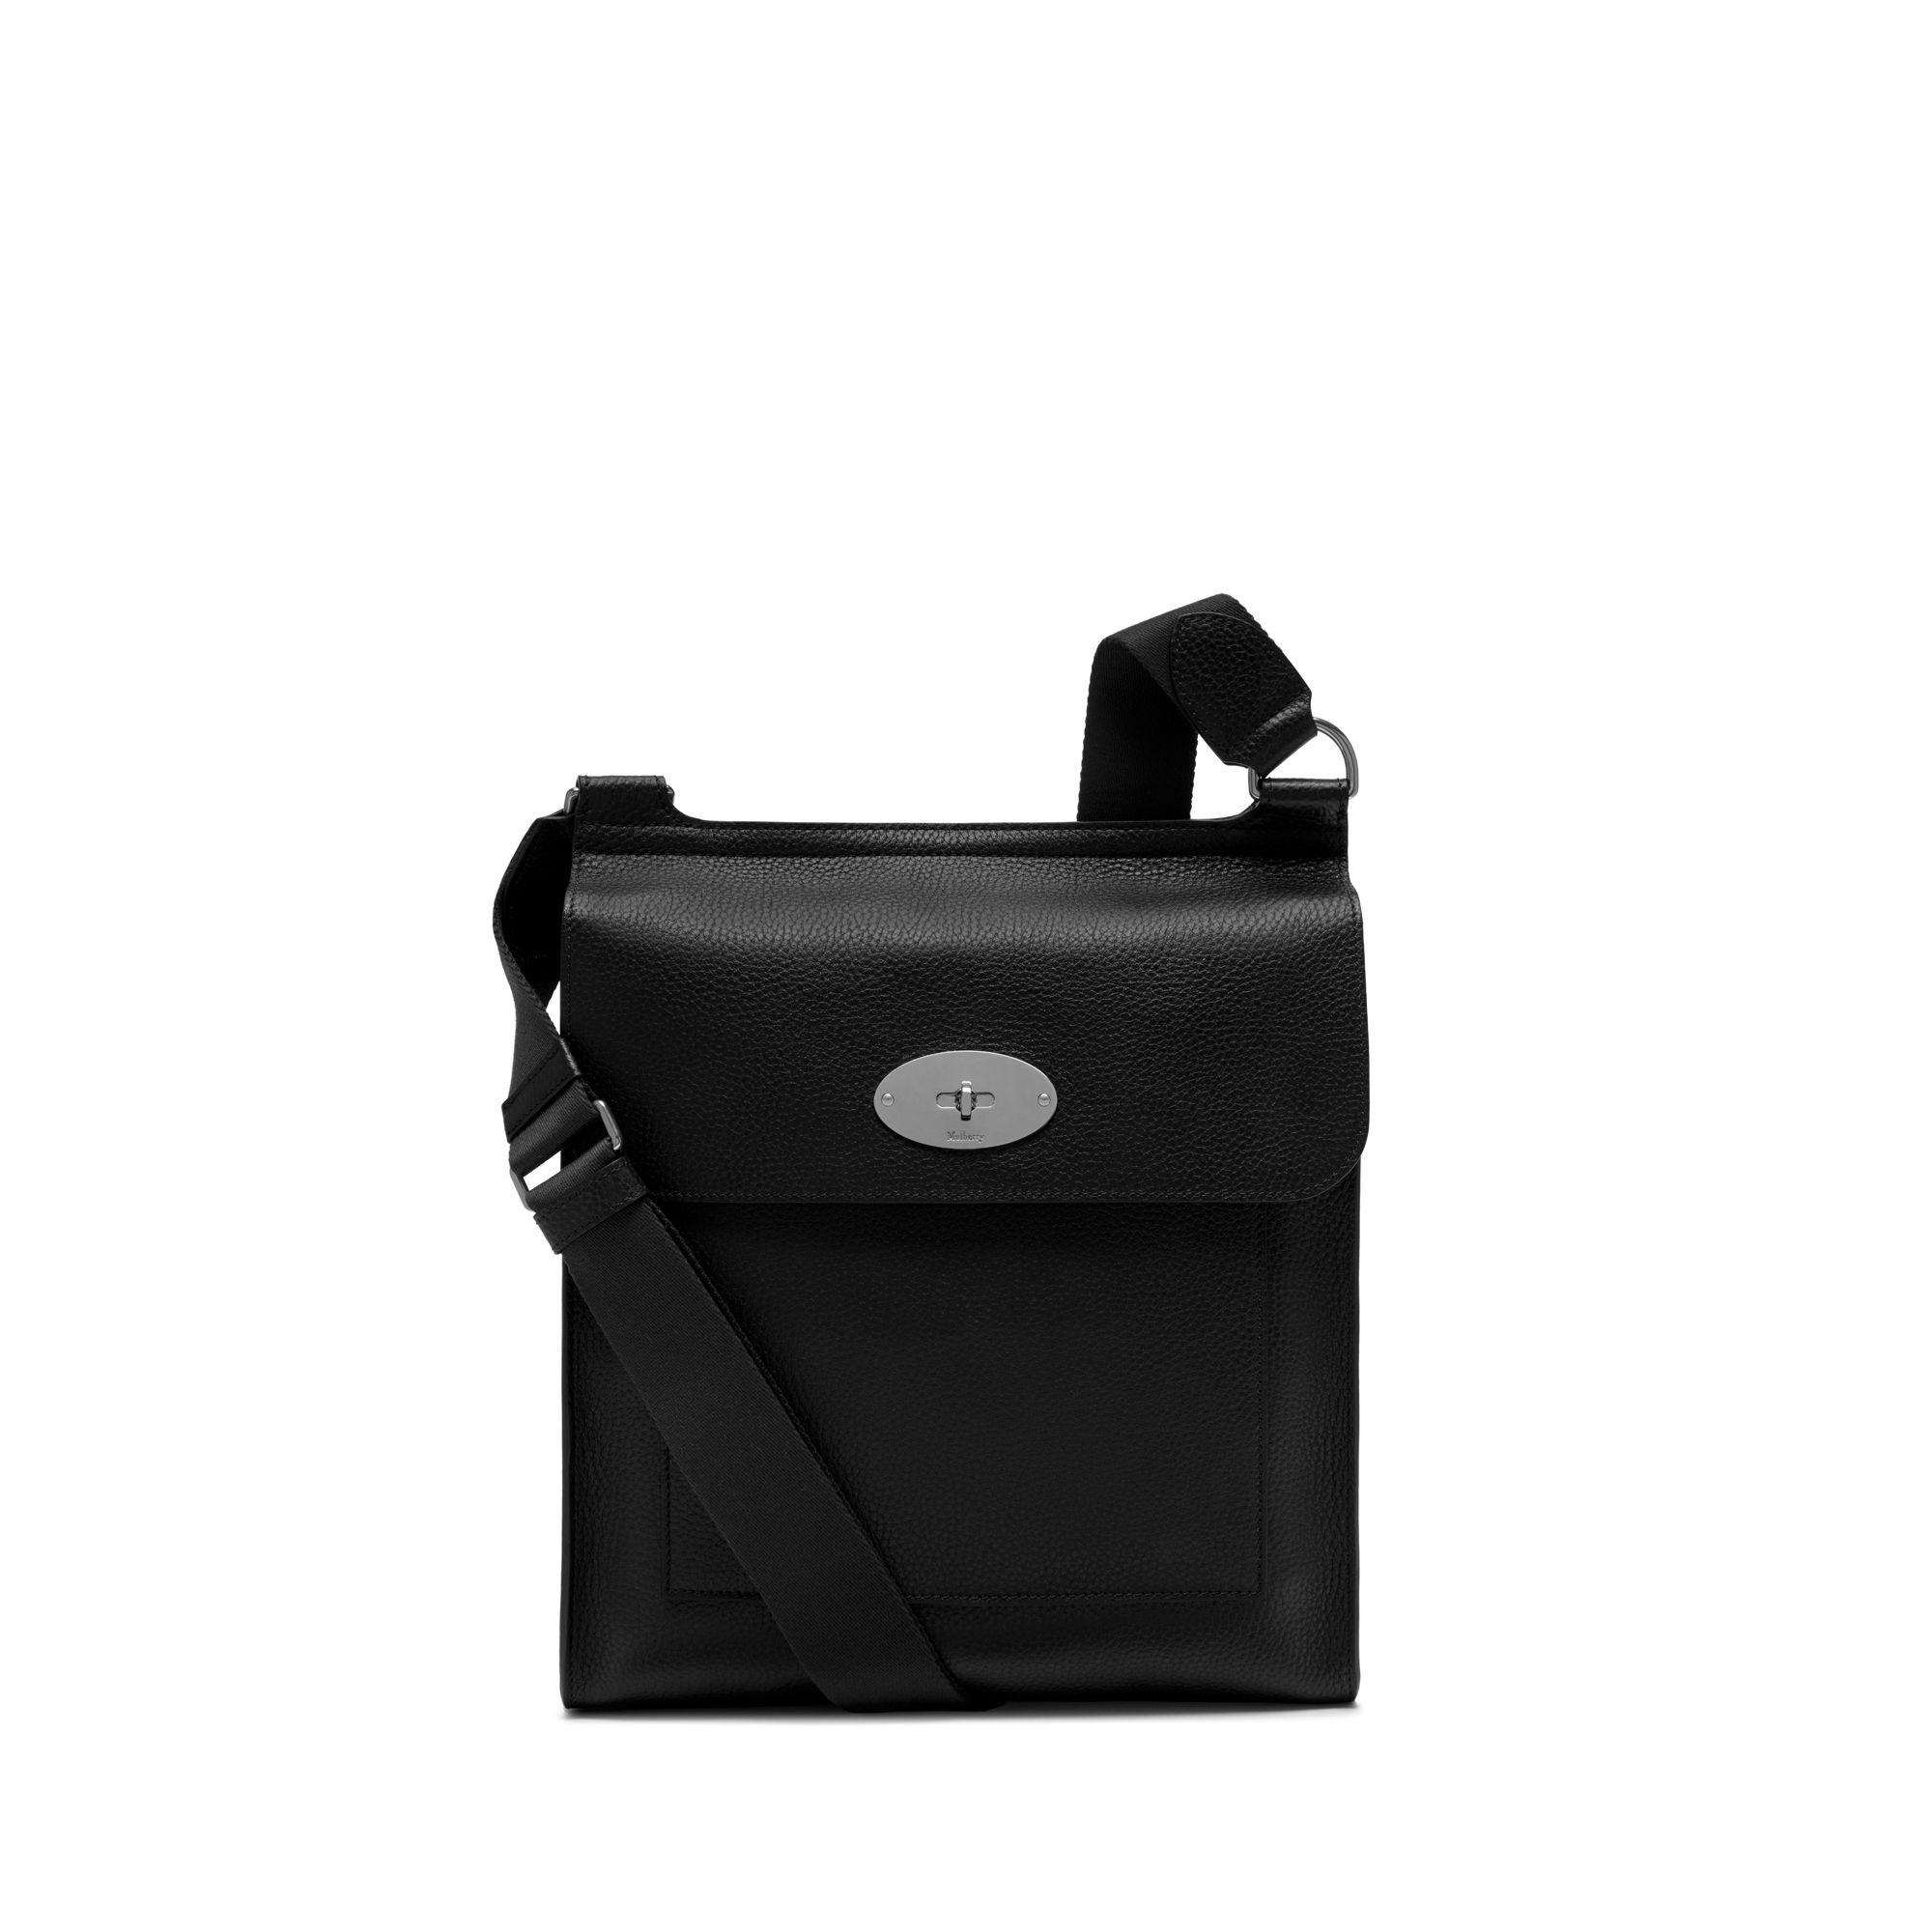 Mulberry New Antony Messenger In Black Natural Grain Leather in ... 1b63c7544dfe6